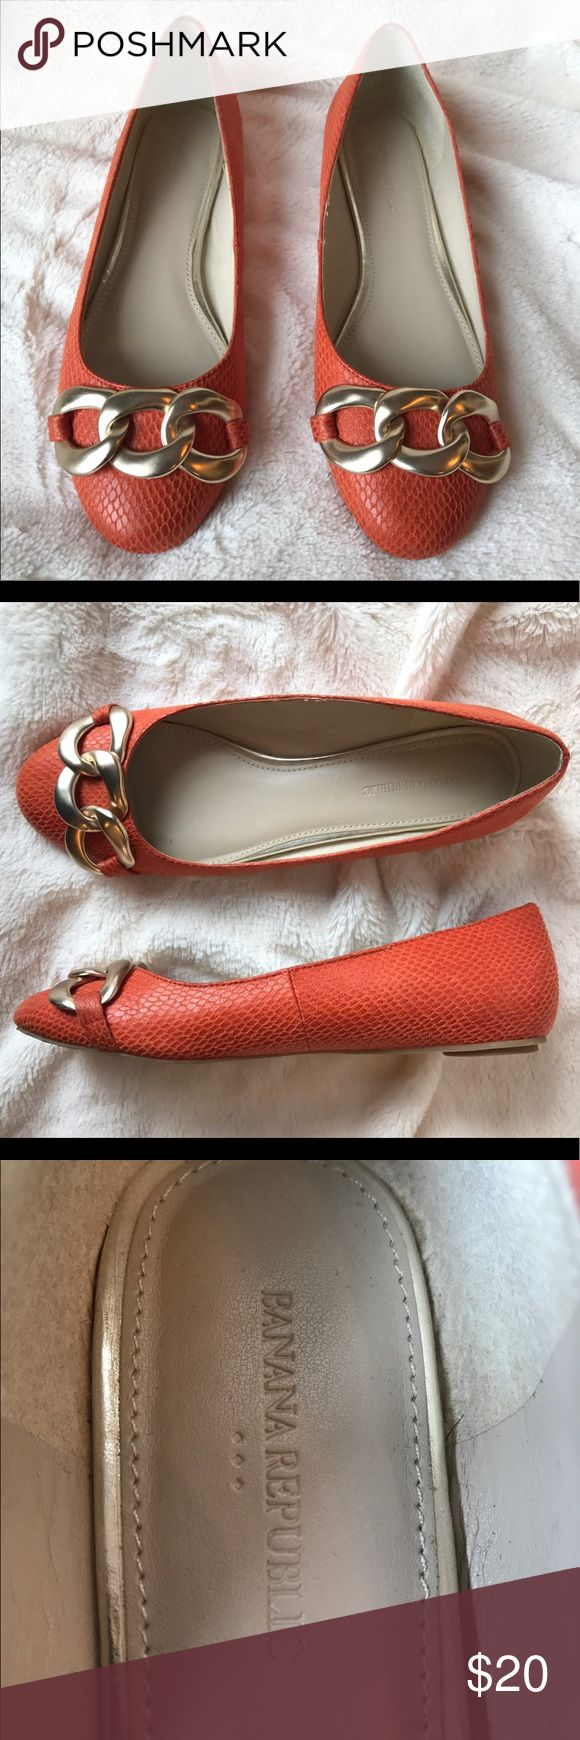 Banana Republic Orange Snake Gold Buckle Flats Banana Republic orange snake skin print flats with large gold buckle. Worn once, no marks or scuffs. In perfect condition! Banana Republic Shoes Flats & Loafers